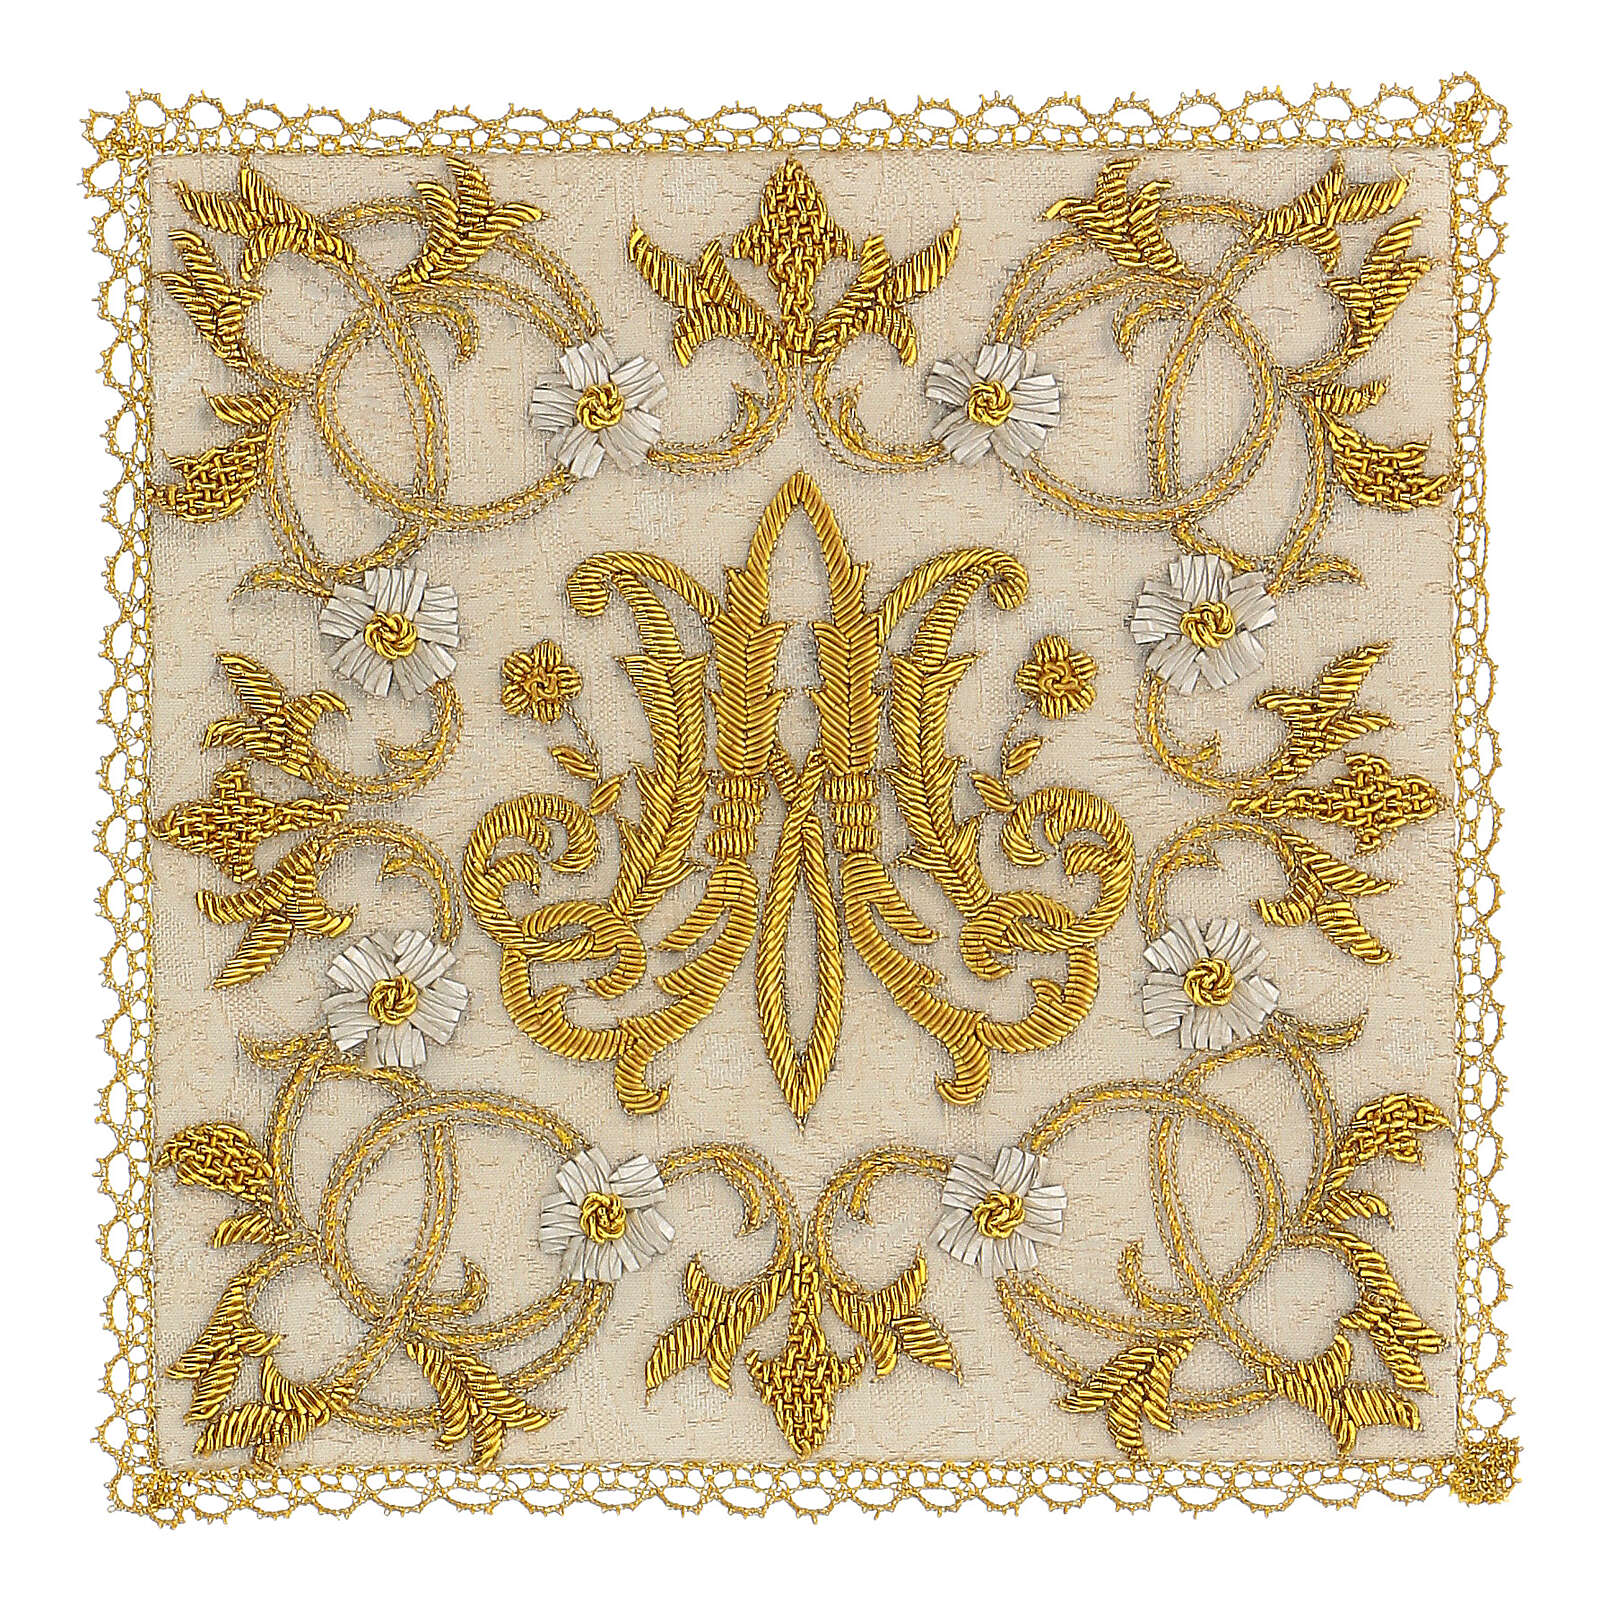 Chalice veil (pall) Marian with satin hand embroidery 4